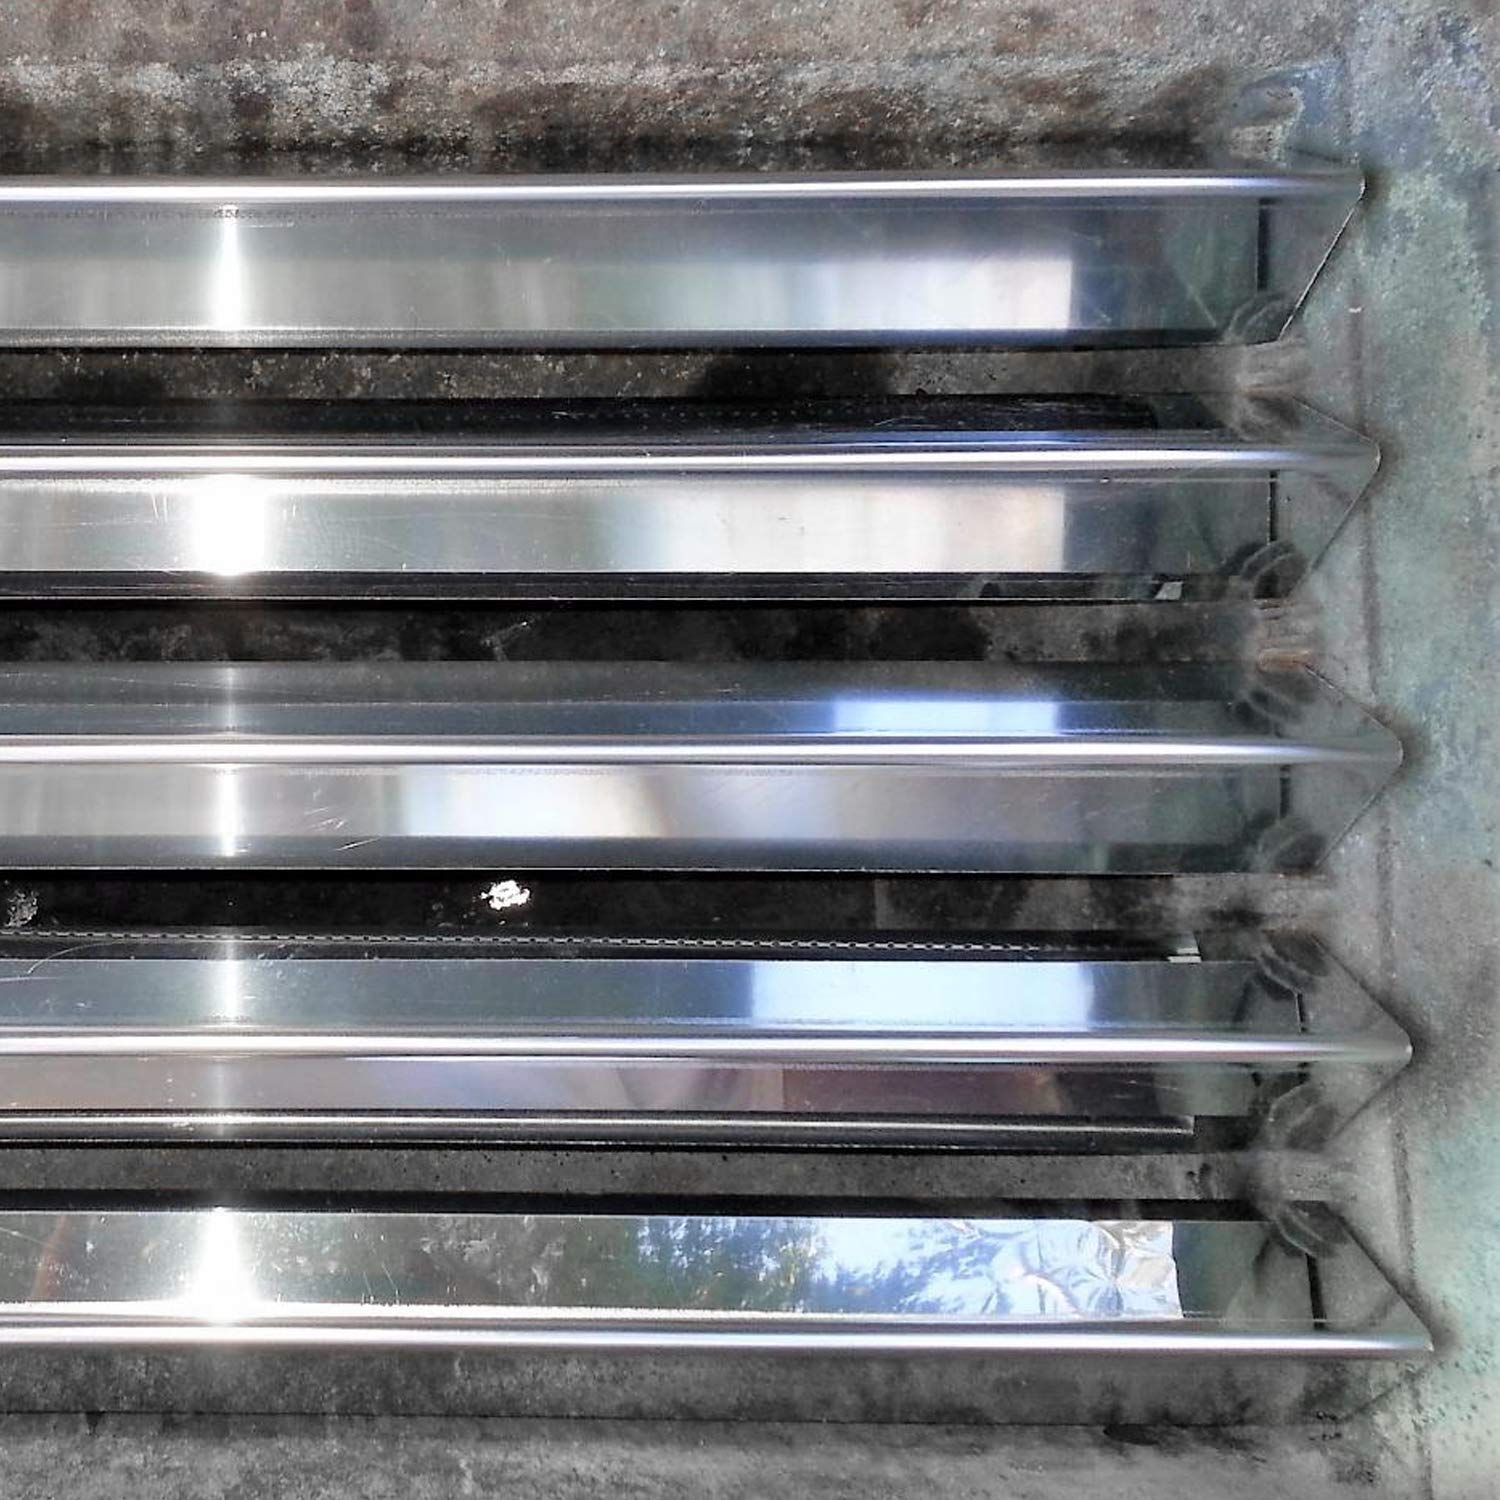 Weber 7535 Flavorizer Bars 21 5 X 1 88 X 1 63 X 5 Pack 304 Stainless Grillpartsreplacement Online Bbq Parts Retailer